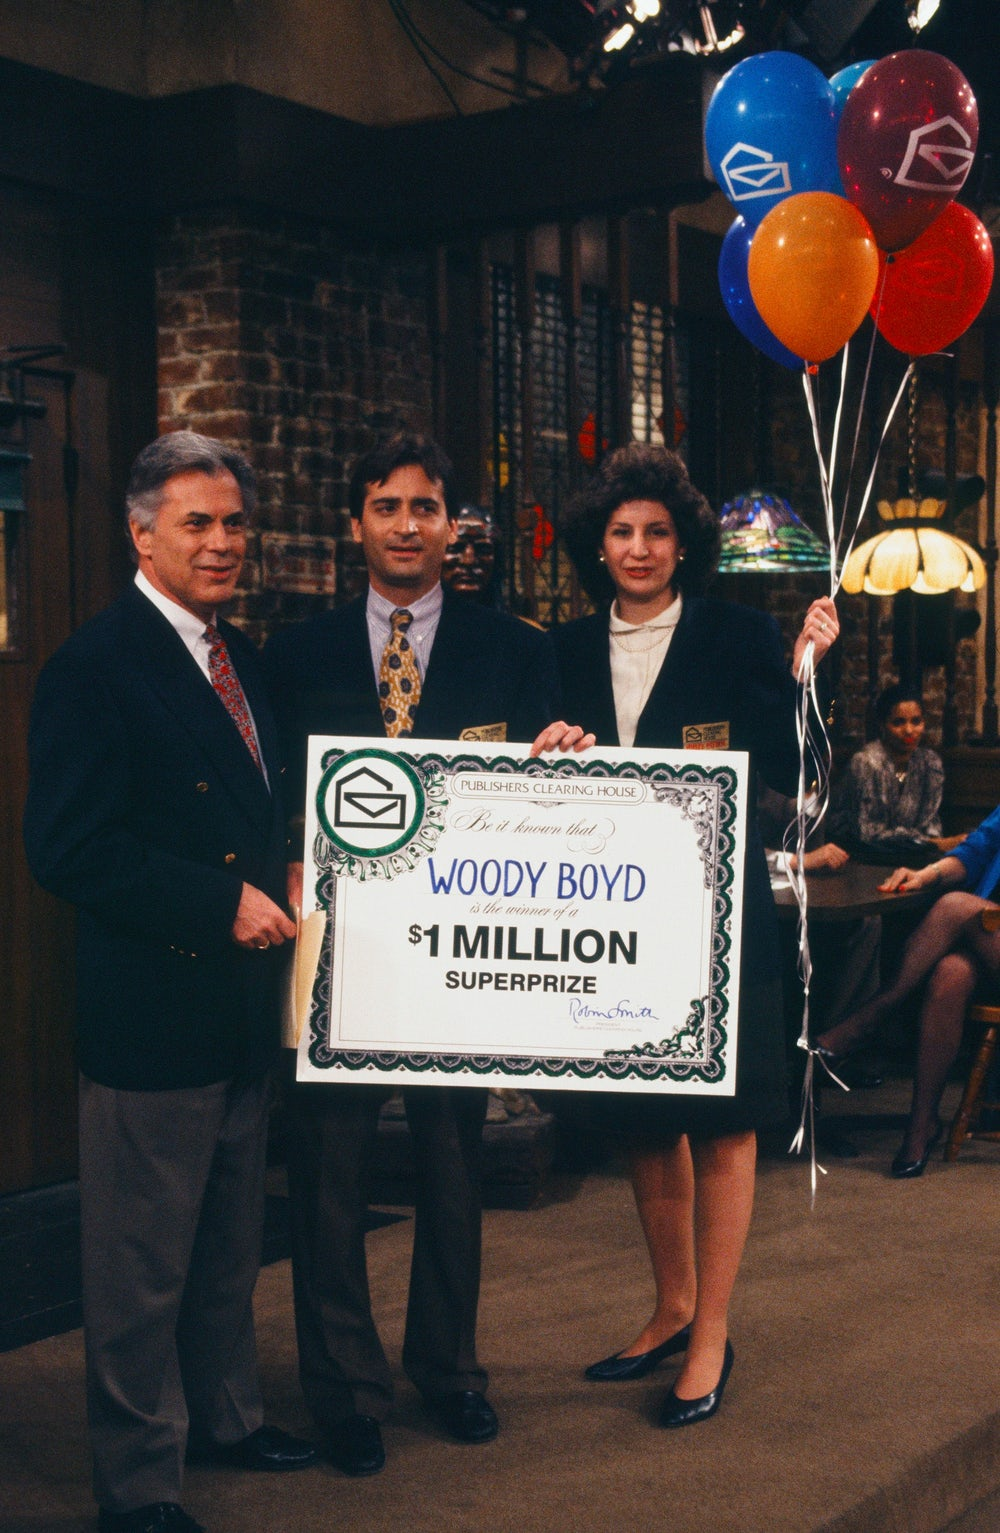 Publishers Clearing House awarders in a 1993 episode of Cheers.